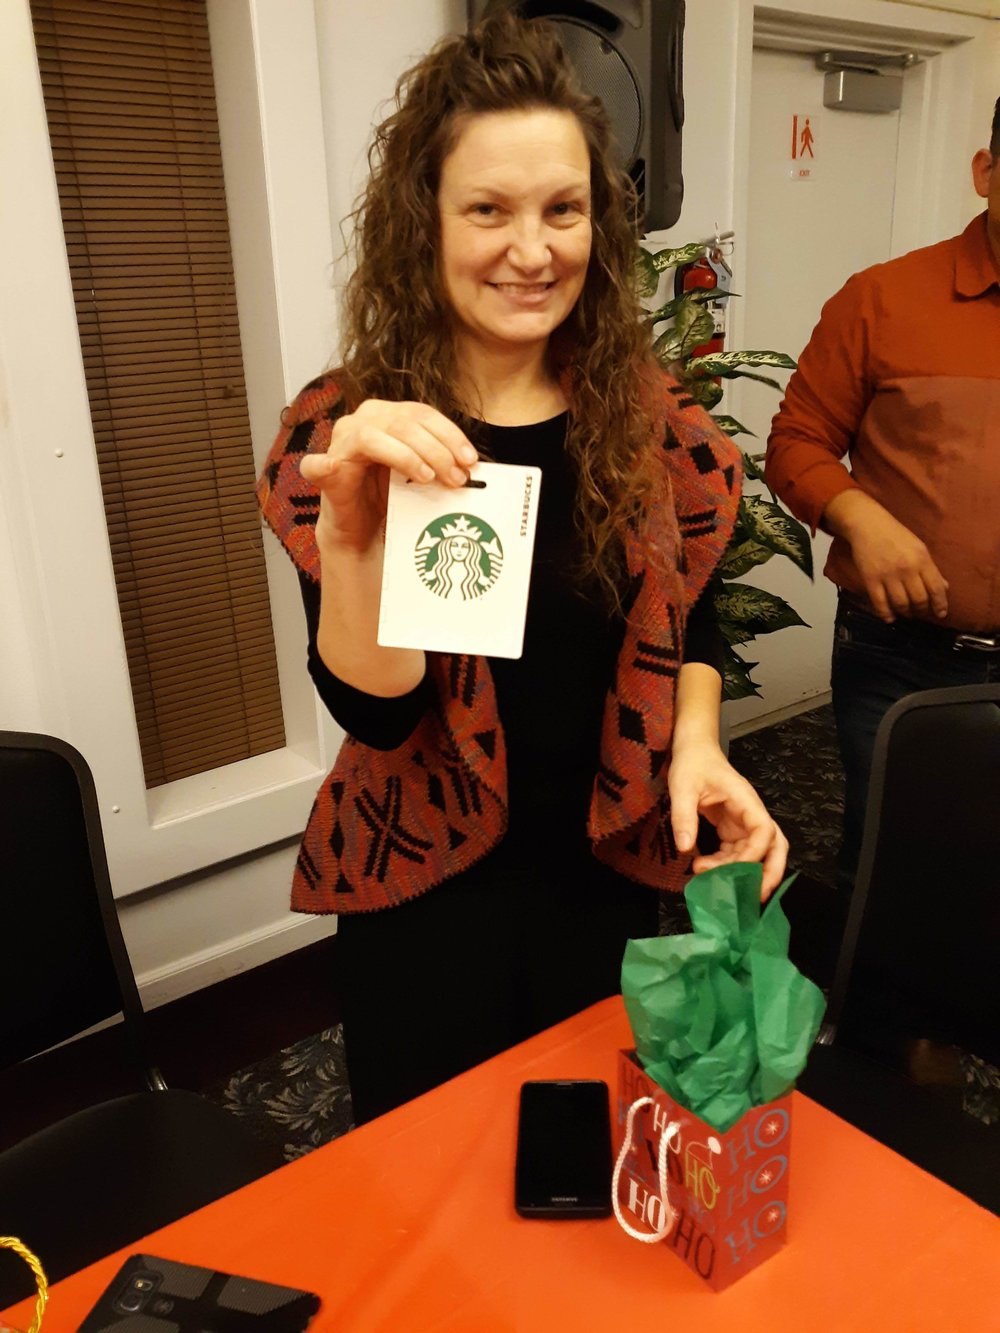 Sis. Jacquie received a Starbucks gift card. Woo Hoo!